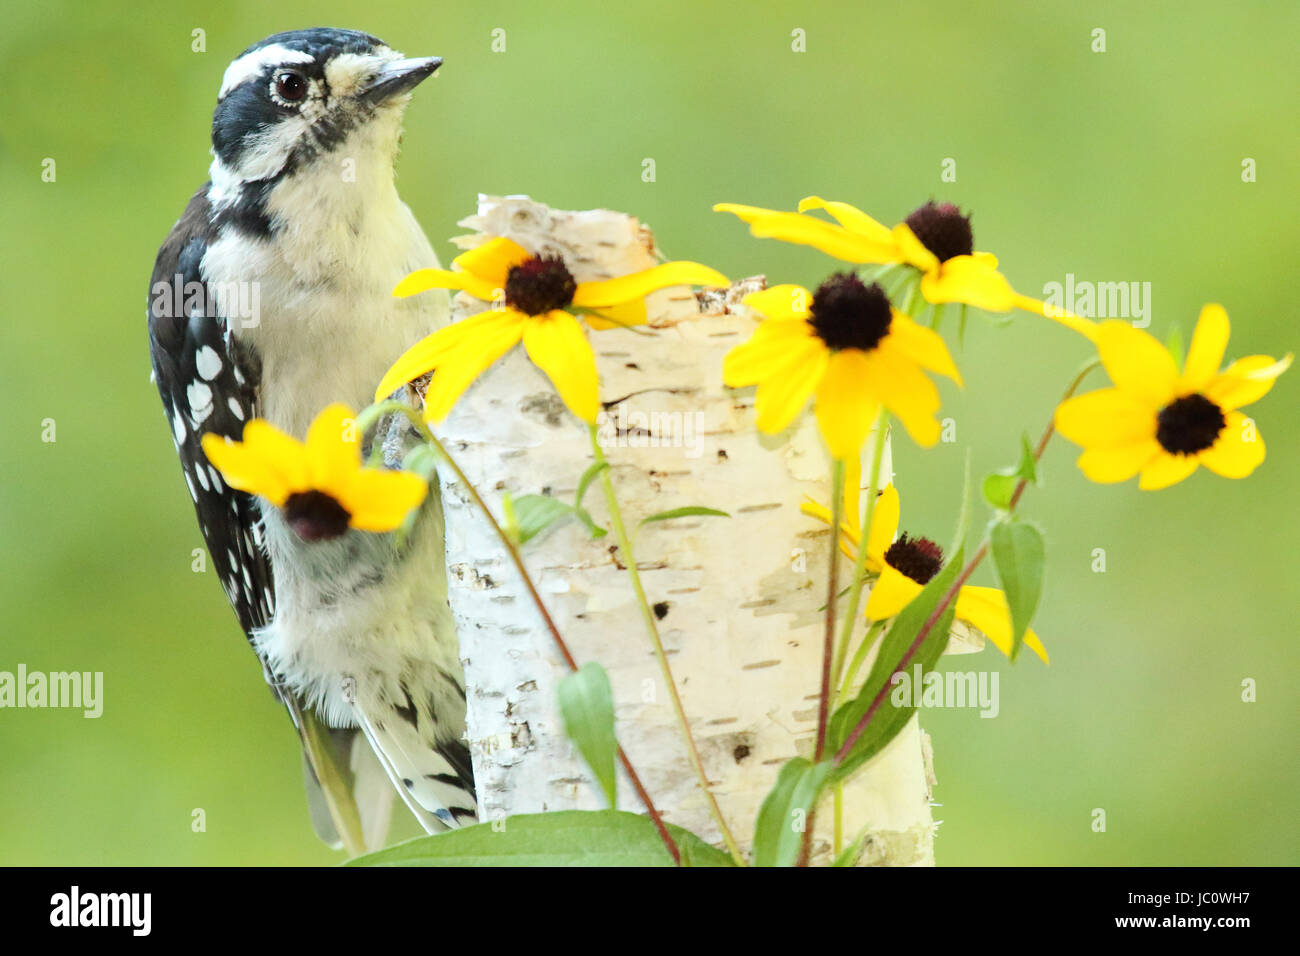 A Downy Woodpecker musing among Black-eyed Susan flowers during summer in the north woods. - Stock Image